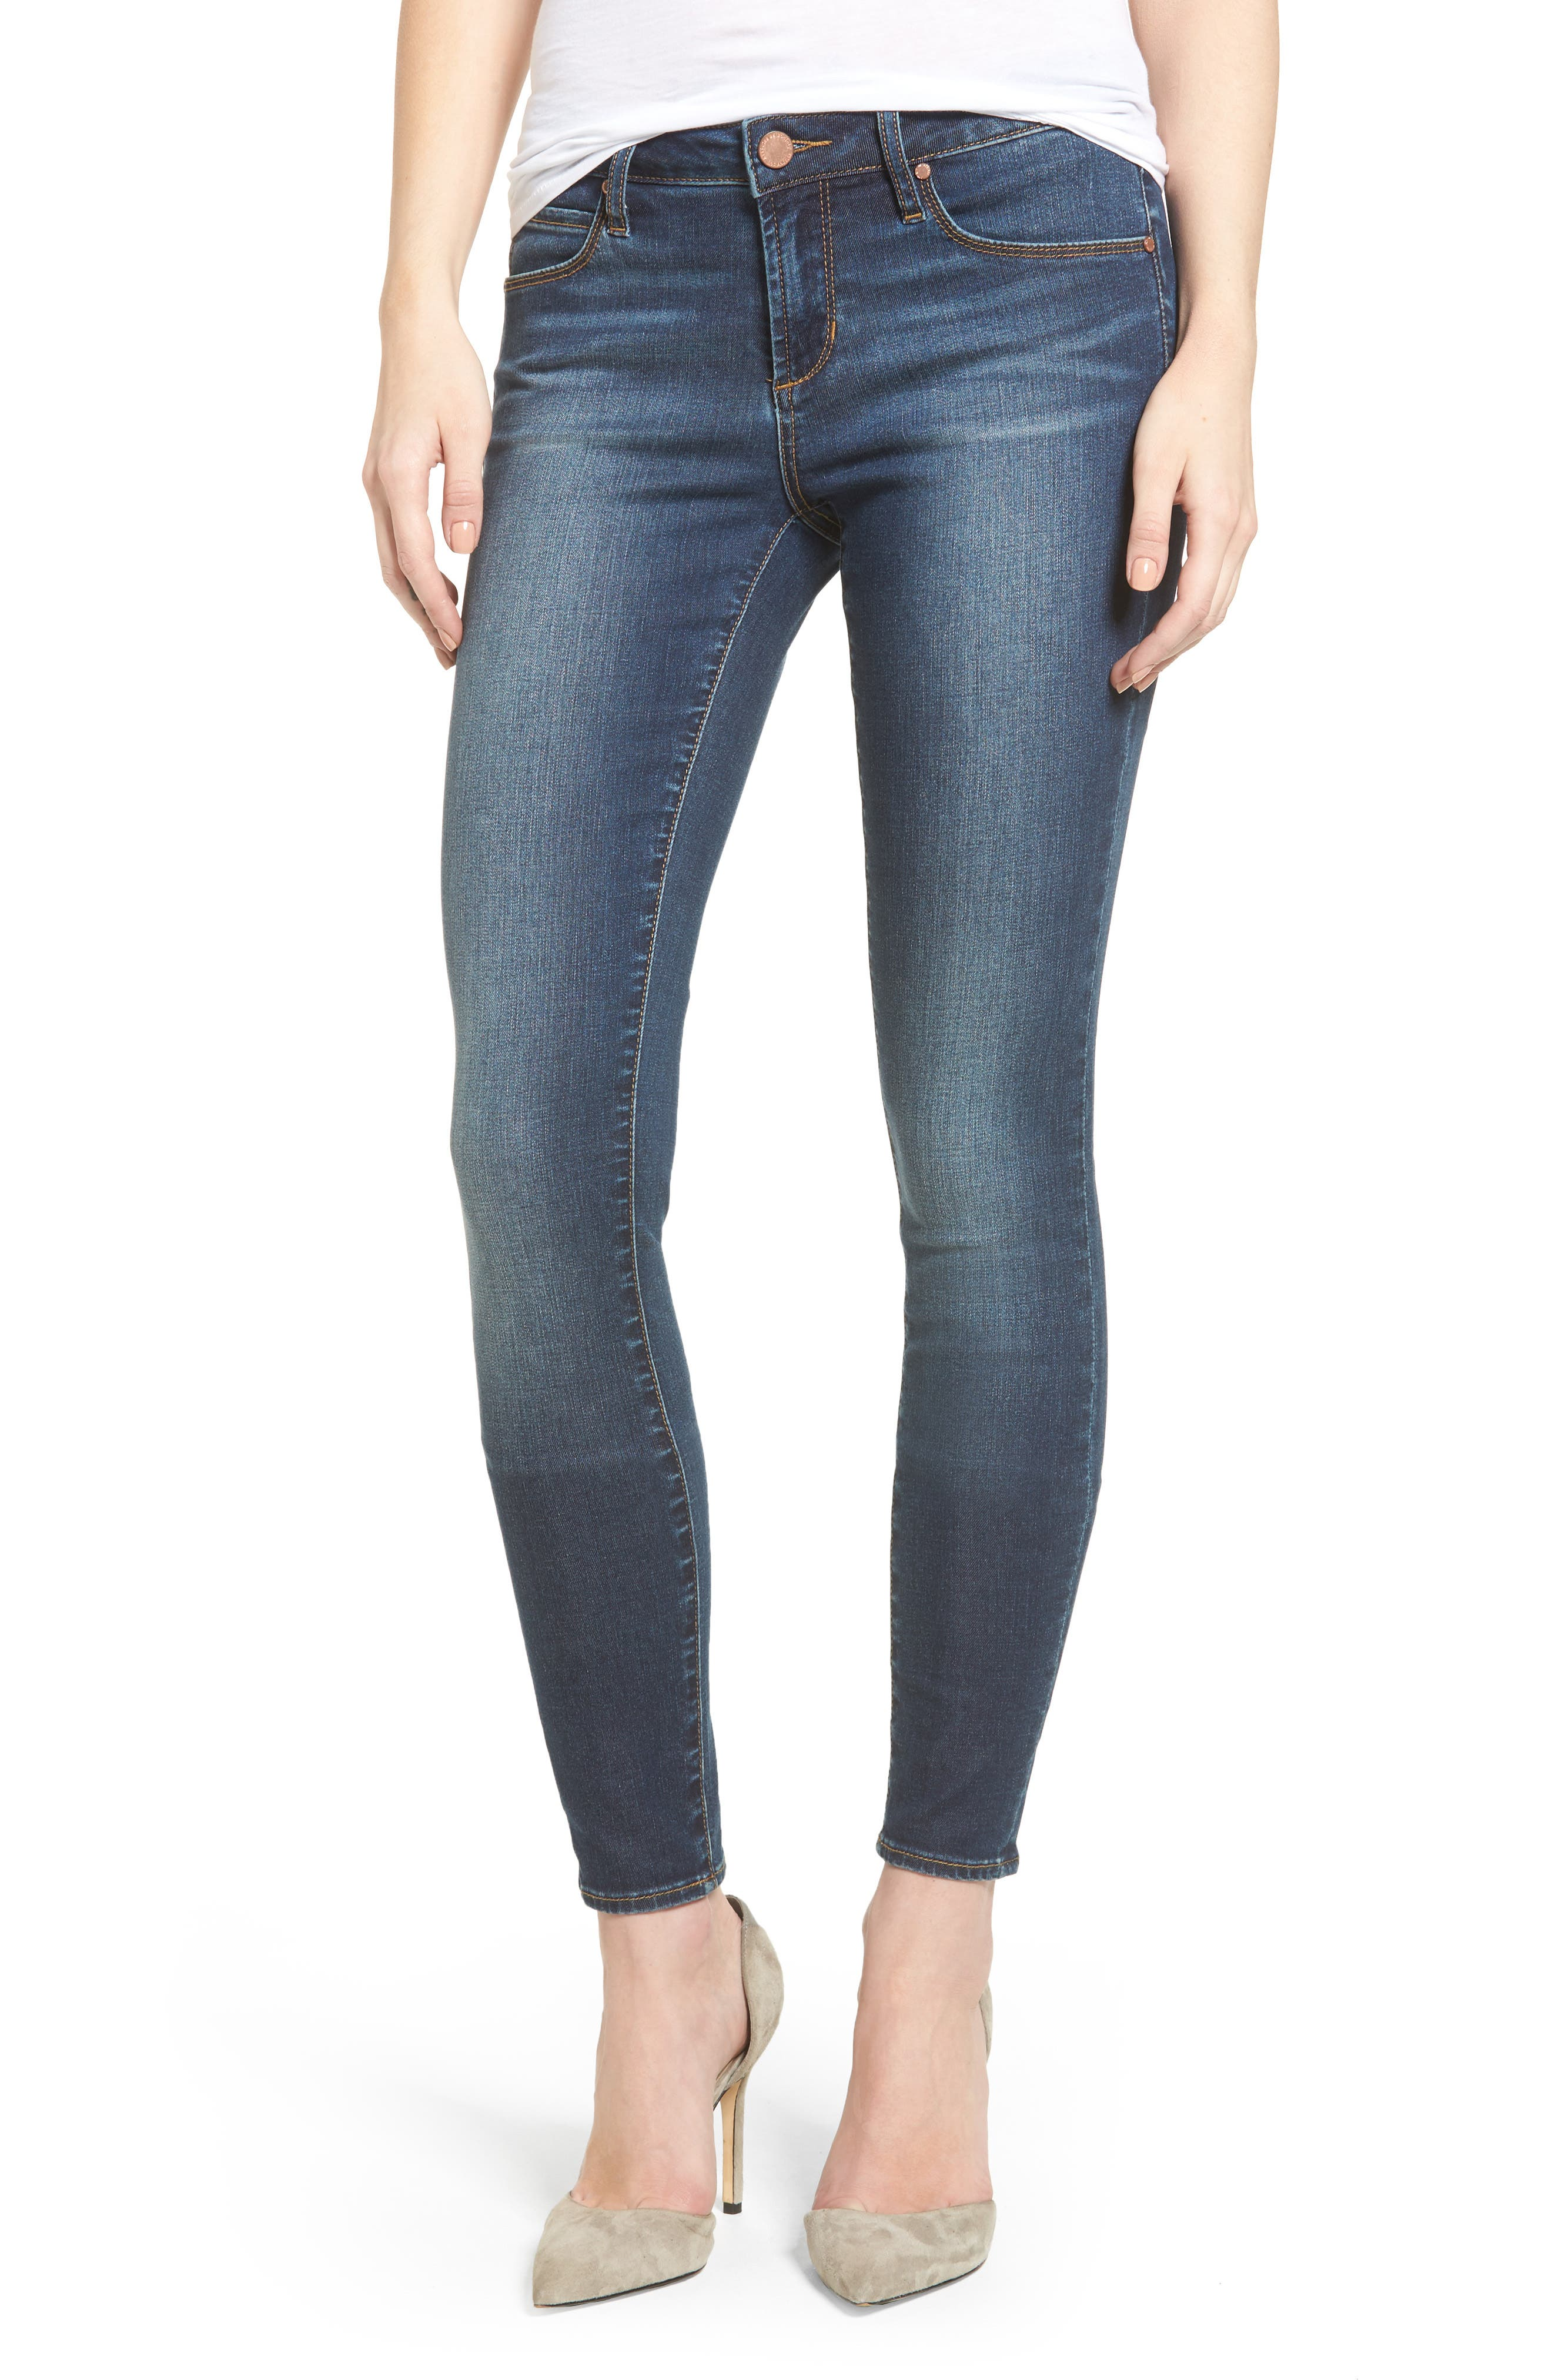 Articles of Society Mya Skinny Jeans (Glendale)